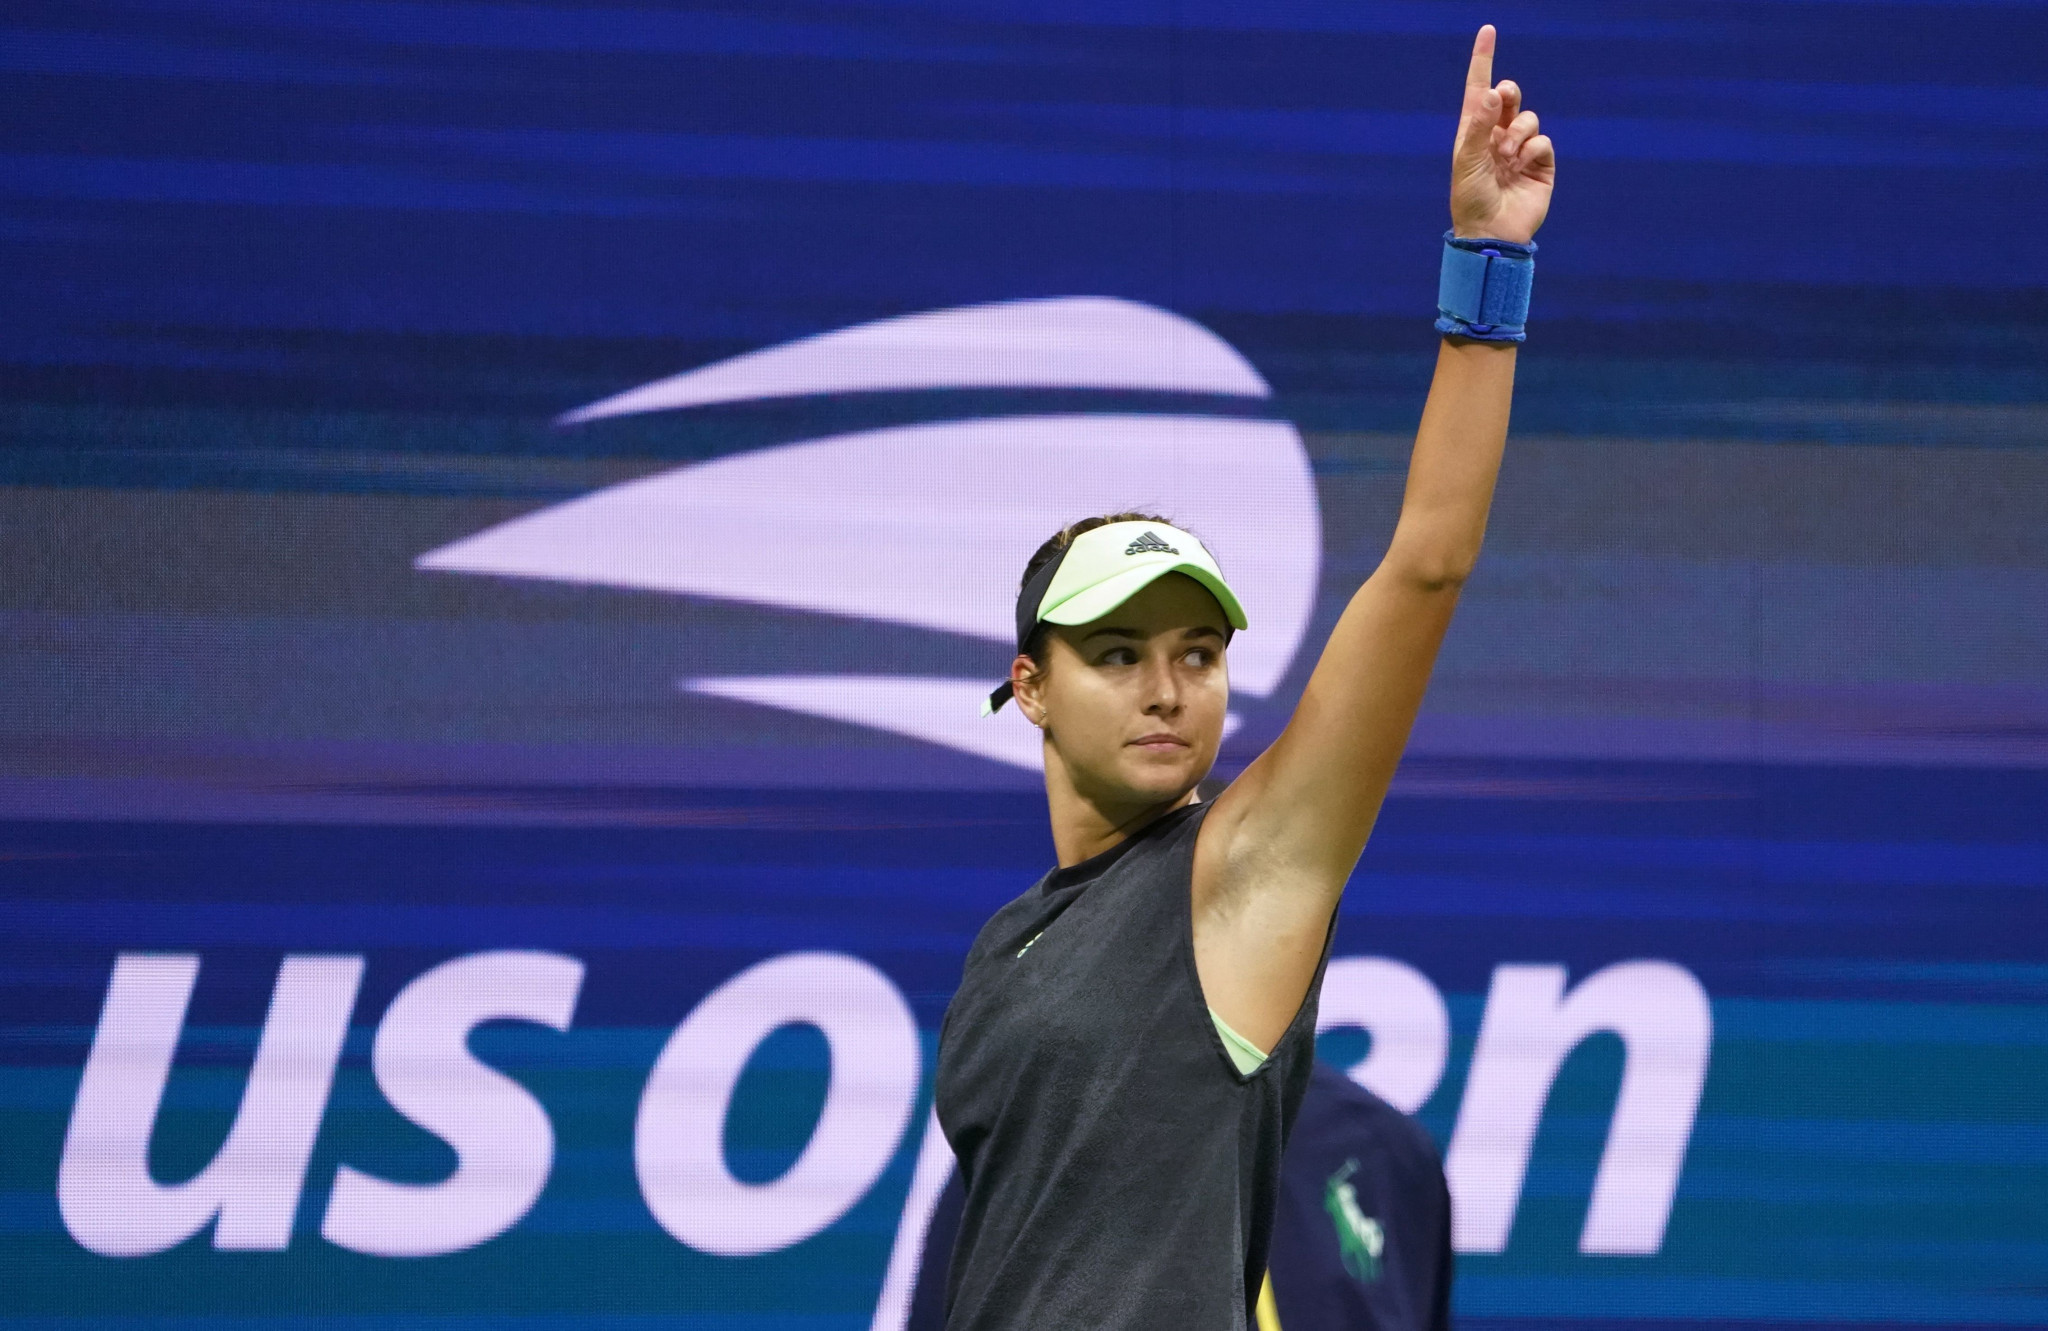 Russian qualifier Anna Kalinskaya knocked out Sloane Stephens ©Getty Images